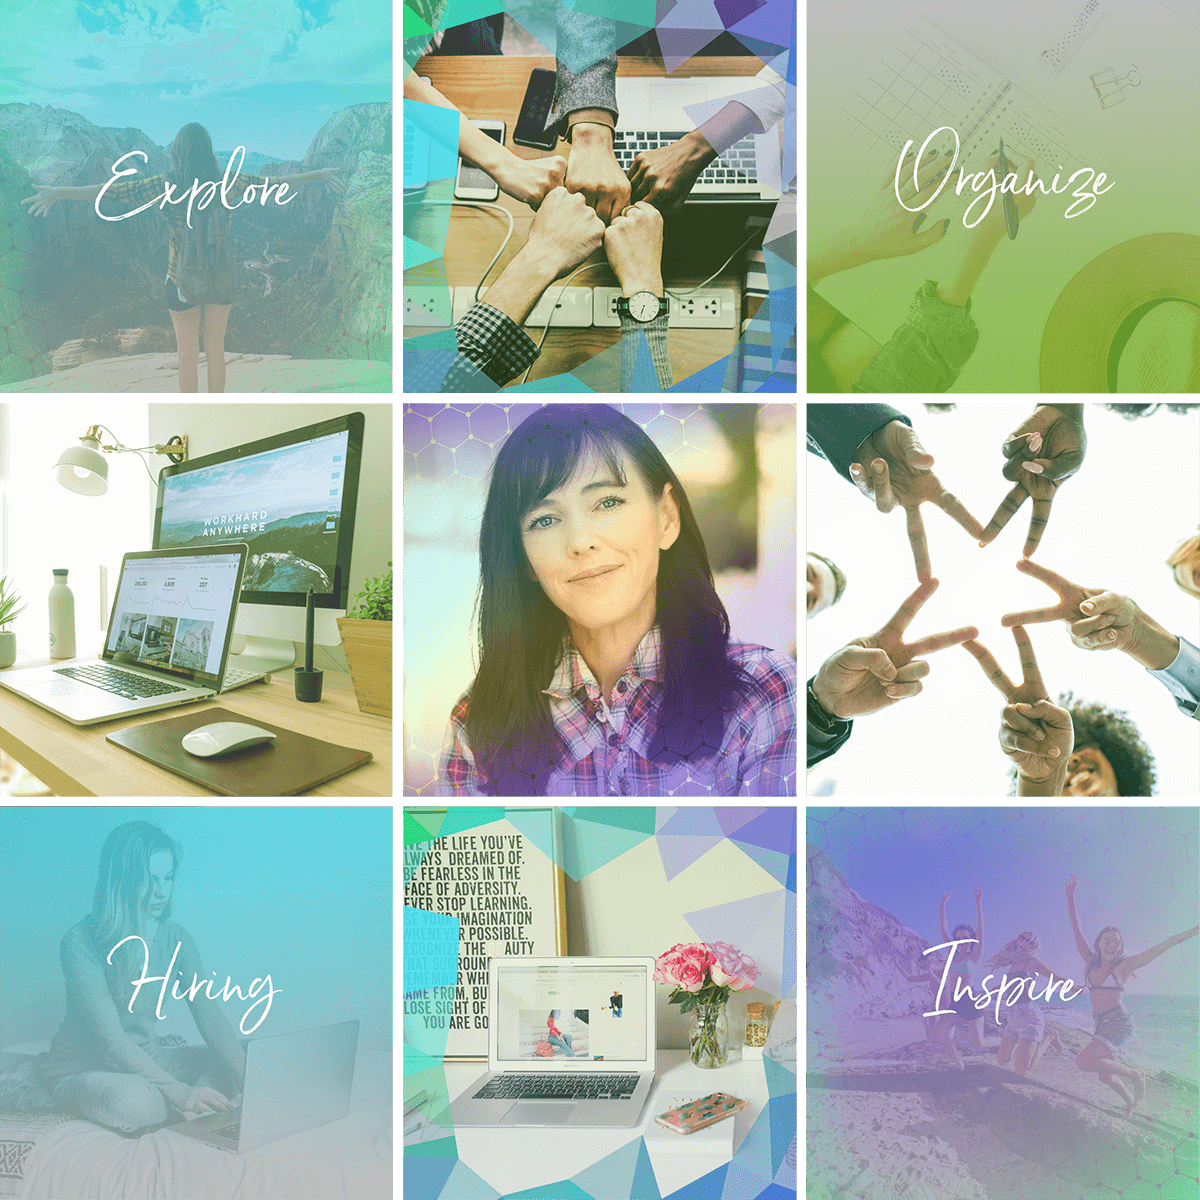 Social Media Templates and Overlays for Jana Works